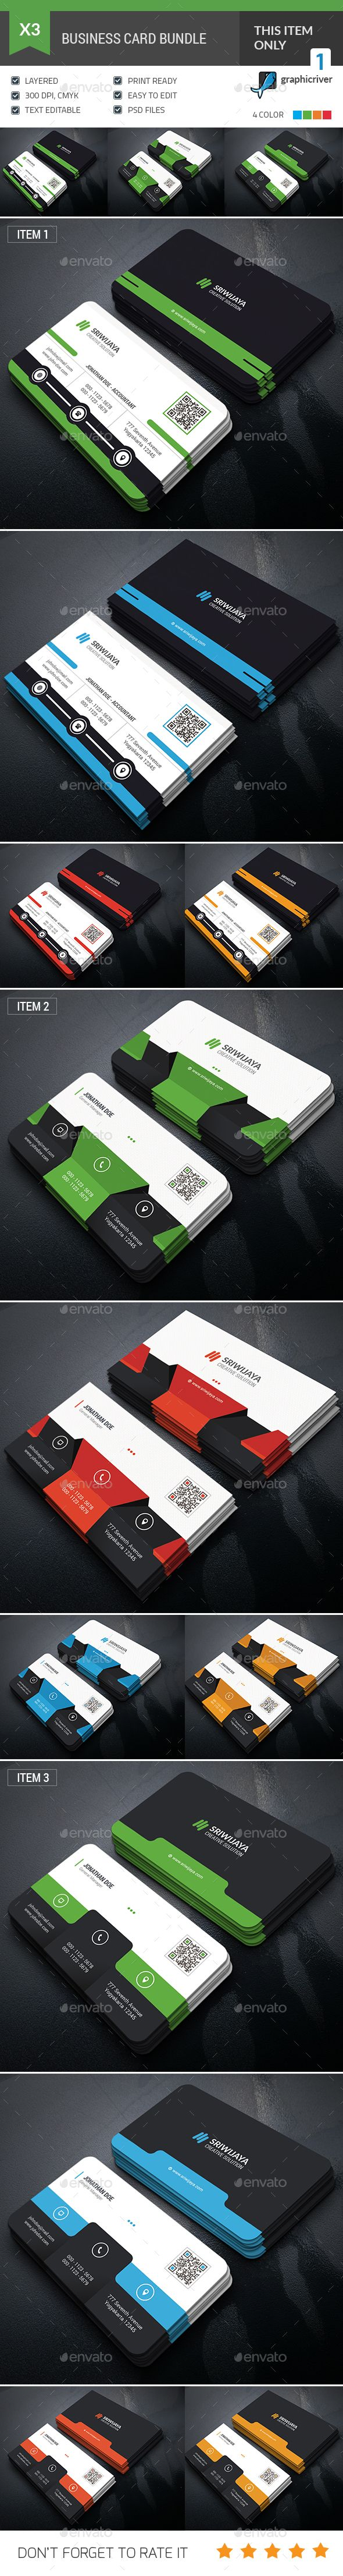 Best 25 Business card maker ideas on Pinterest